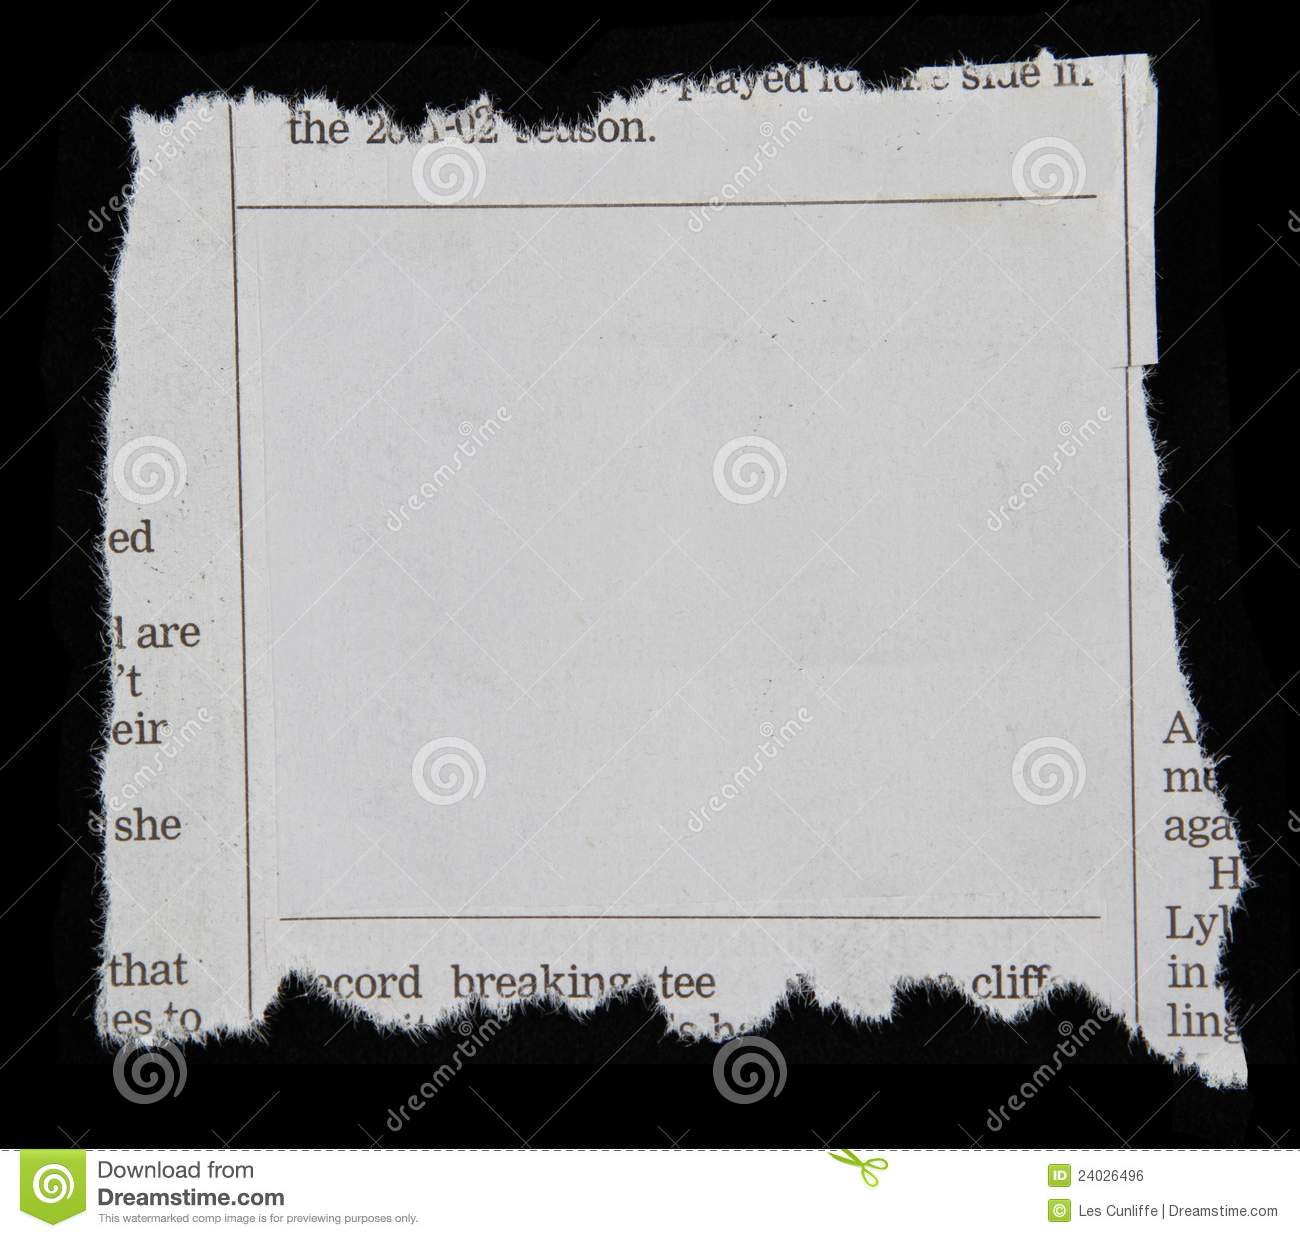 newspaper clipping royalty free stock image